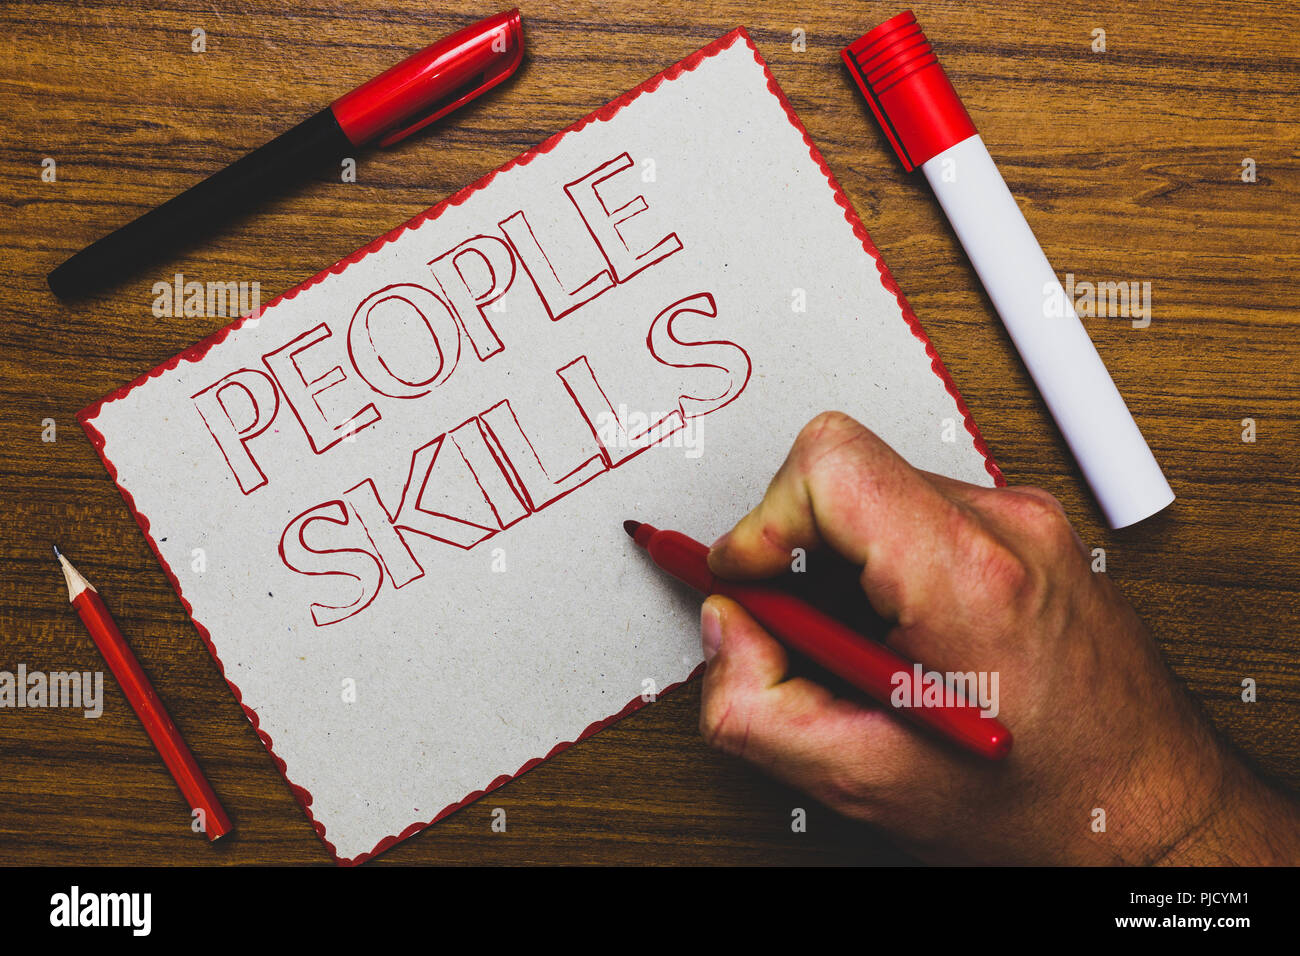 Word writing text People Skills. Business concept for Get Along well Effective Communication Rapport Approachable Man hand holding marker notebook pap - Stock Image